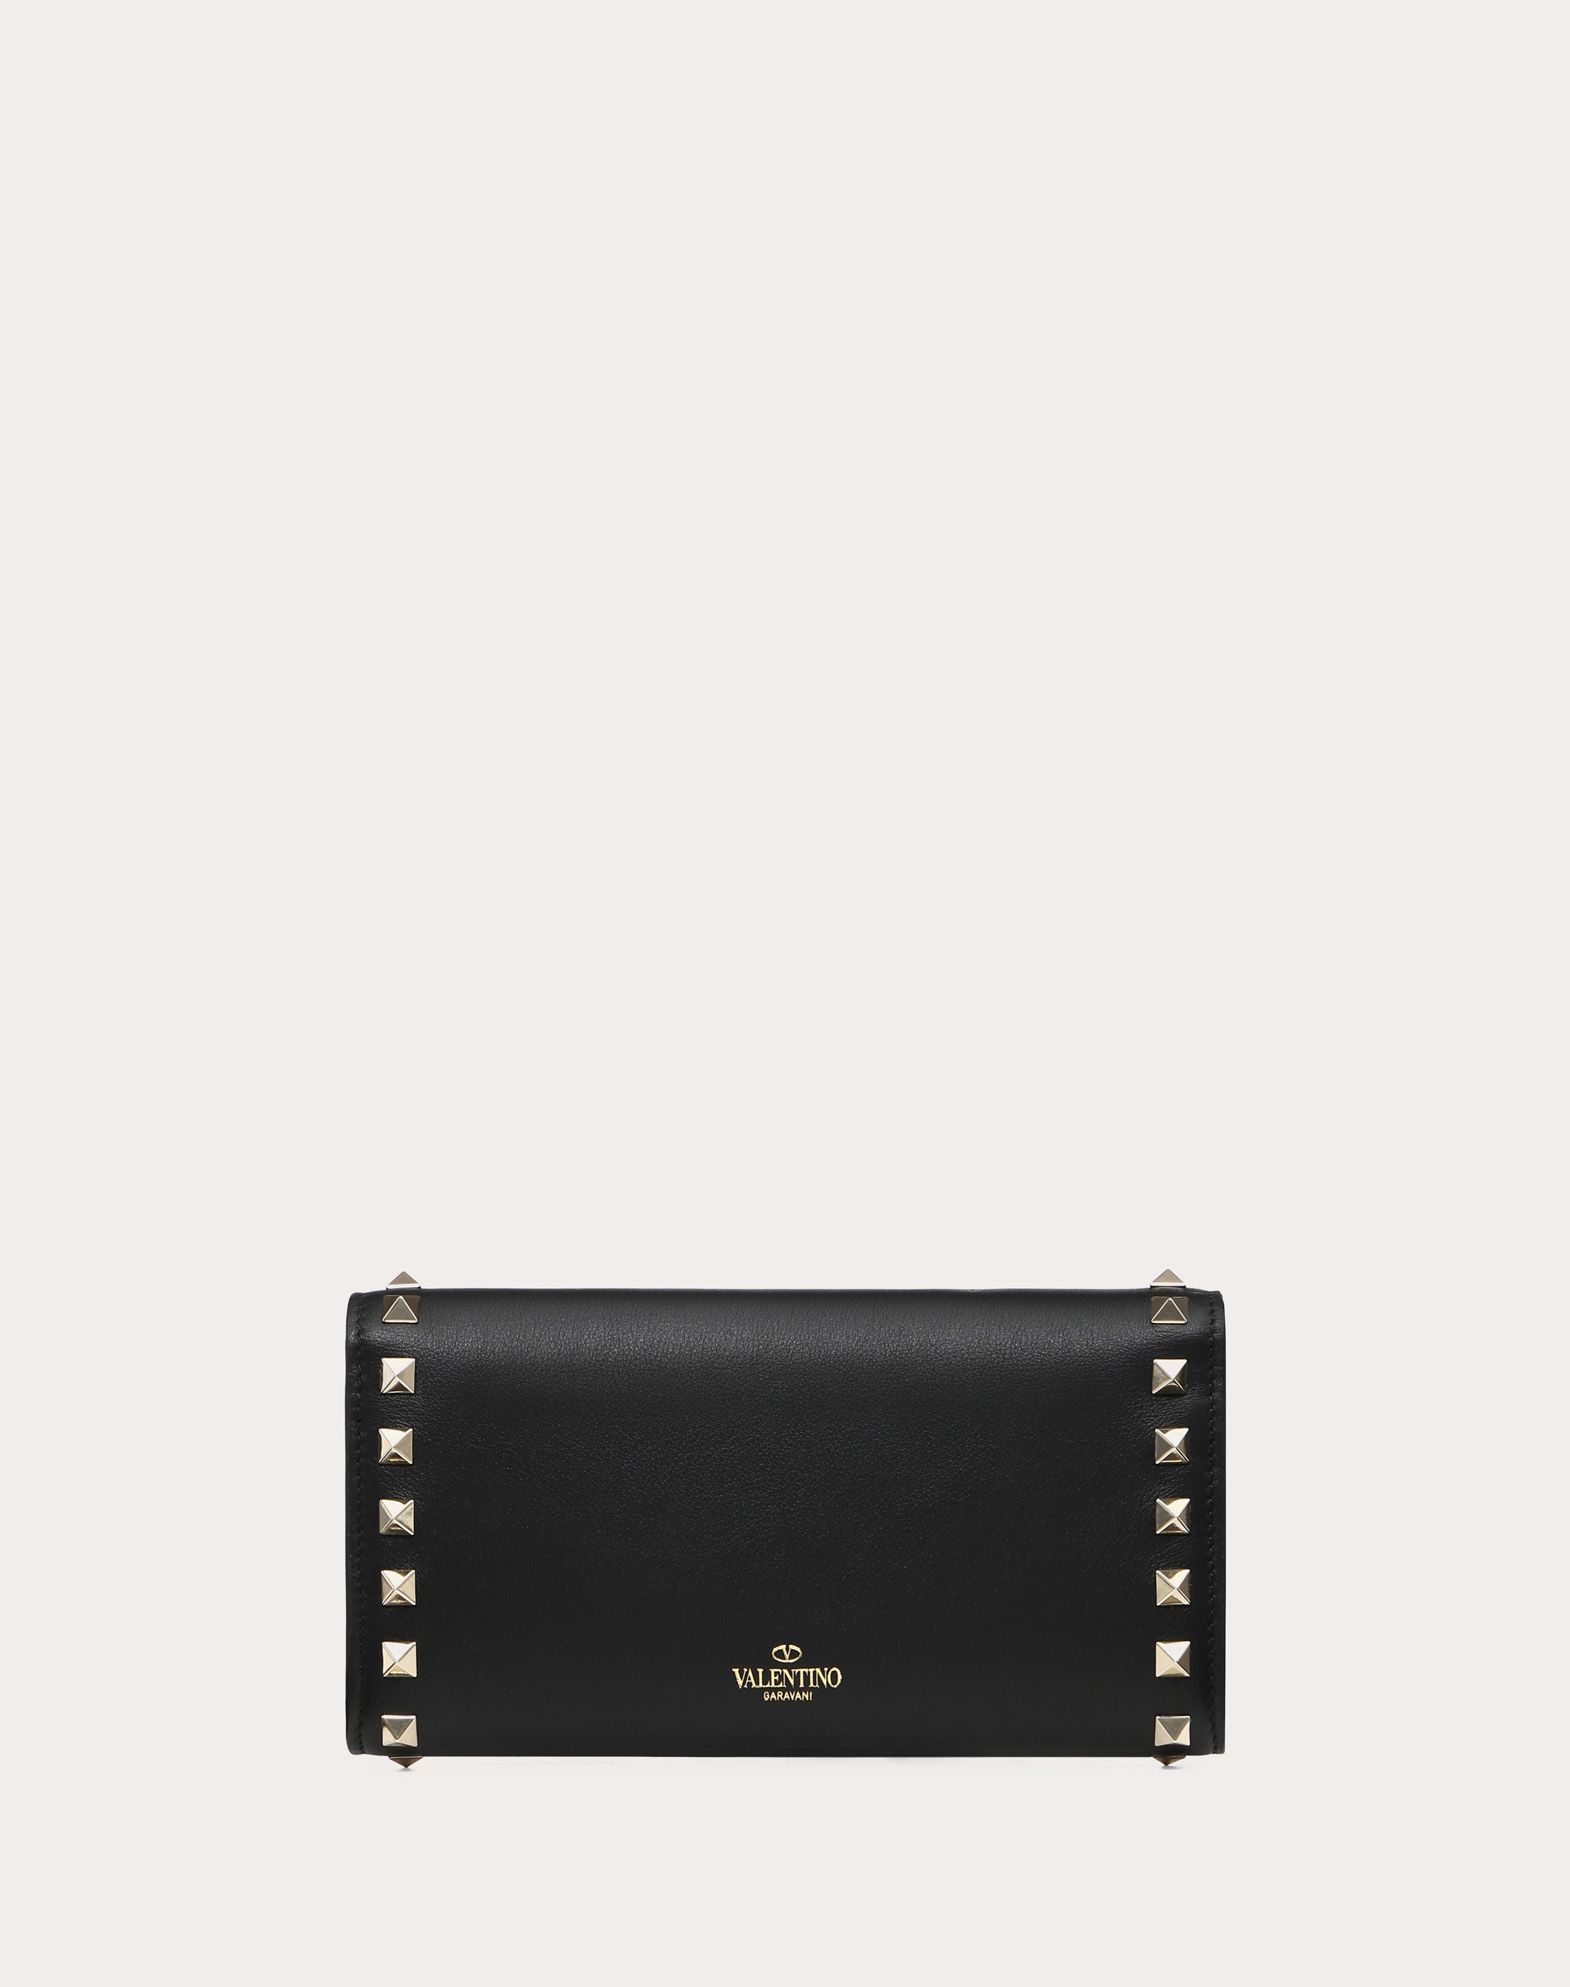 VALENTINO Contrasting applications Snap button closure Internal card slots  46524715eq